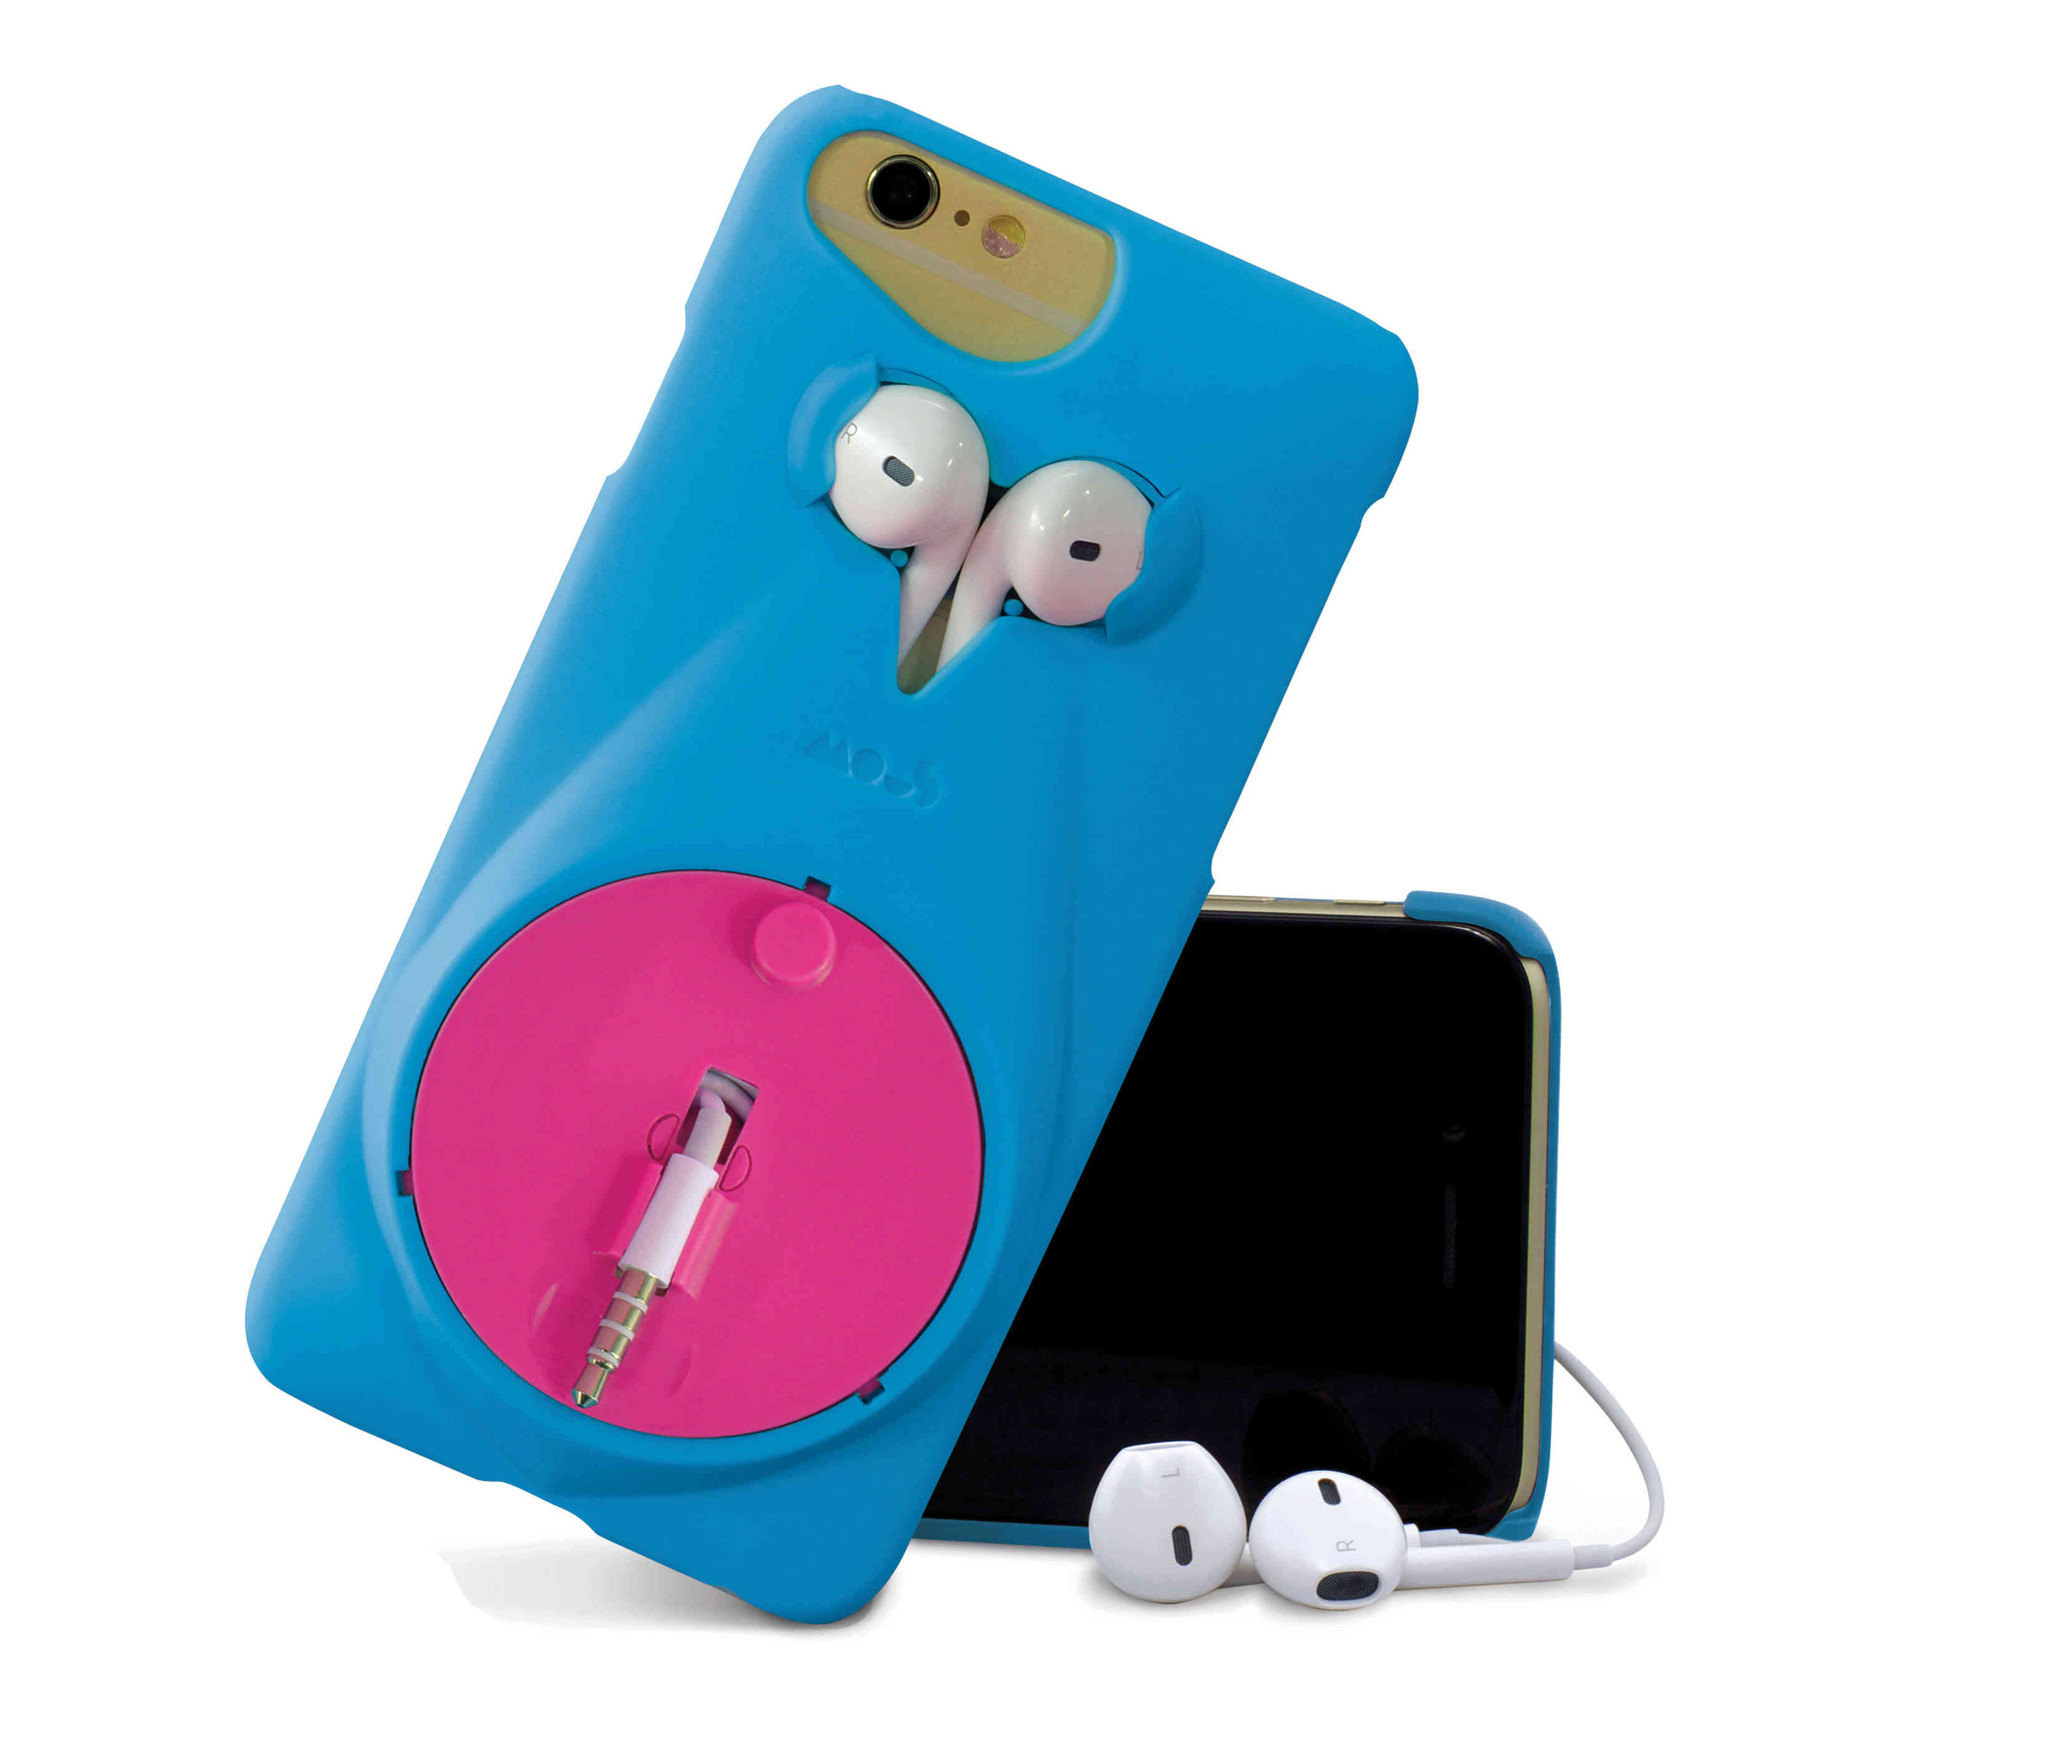 Mous_Musicase_-_iPhone_Case_That_Holds_Headphones_Blue_Pink